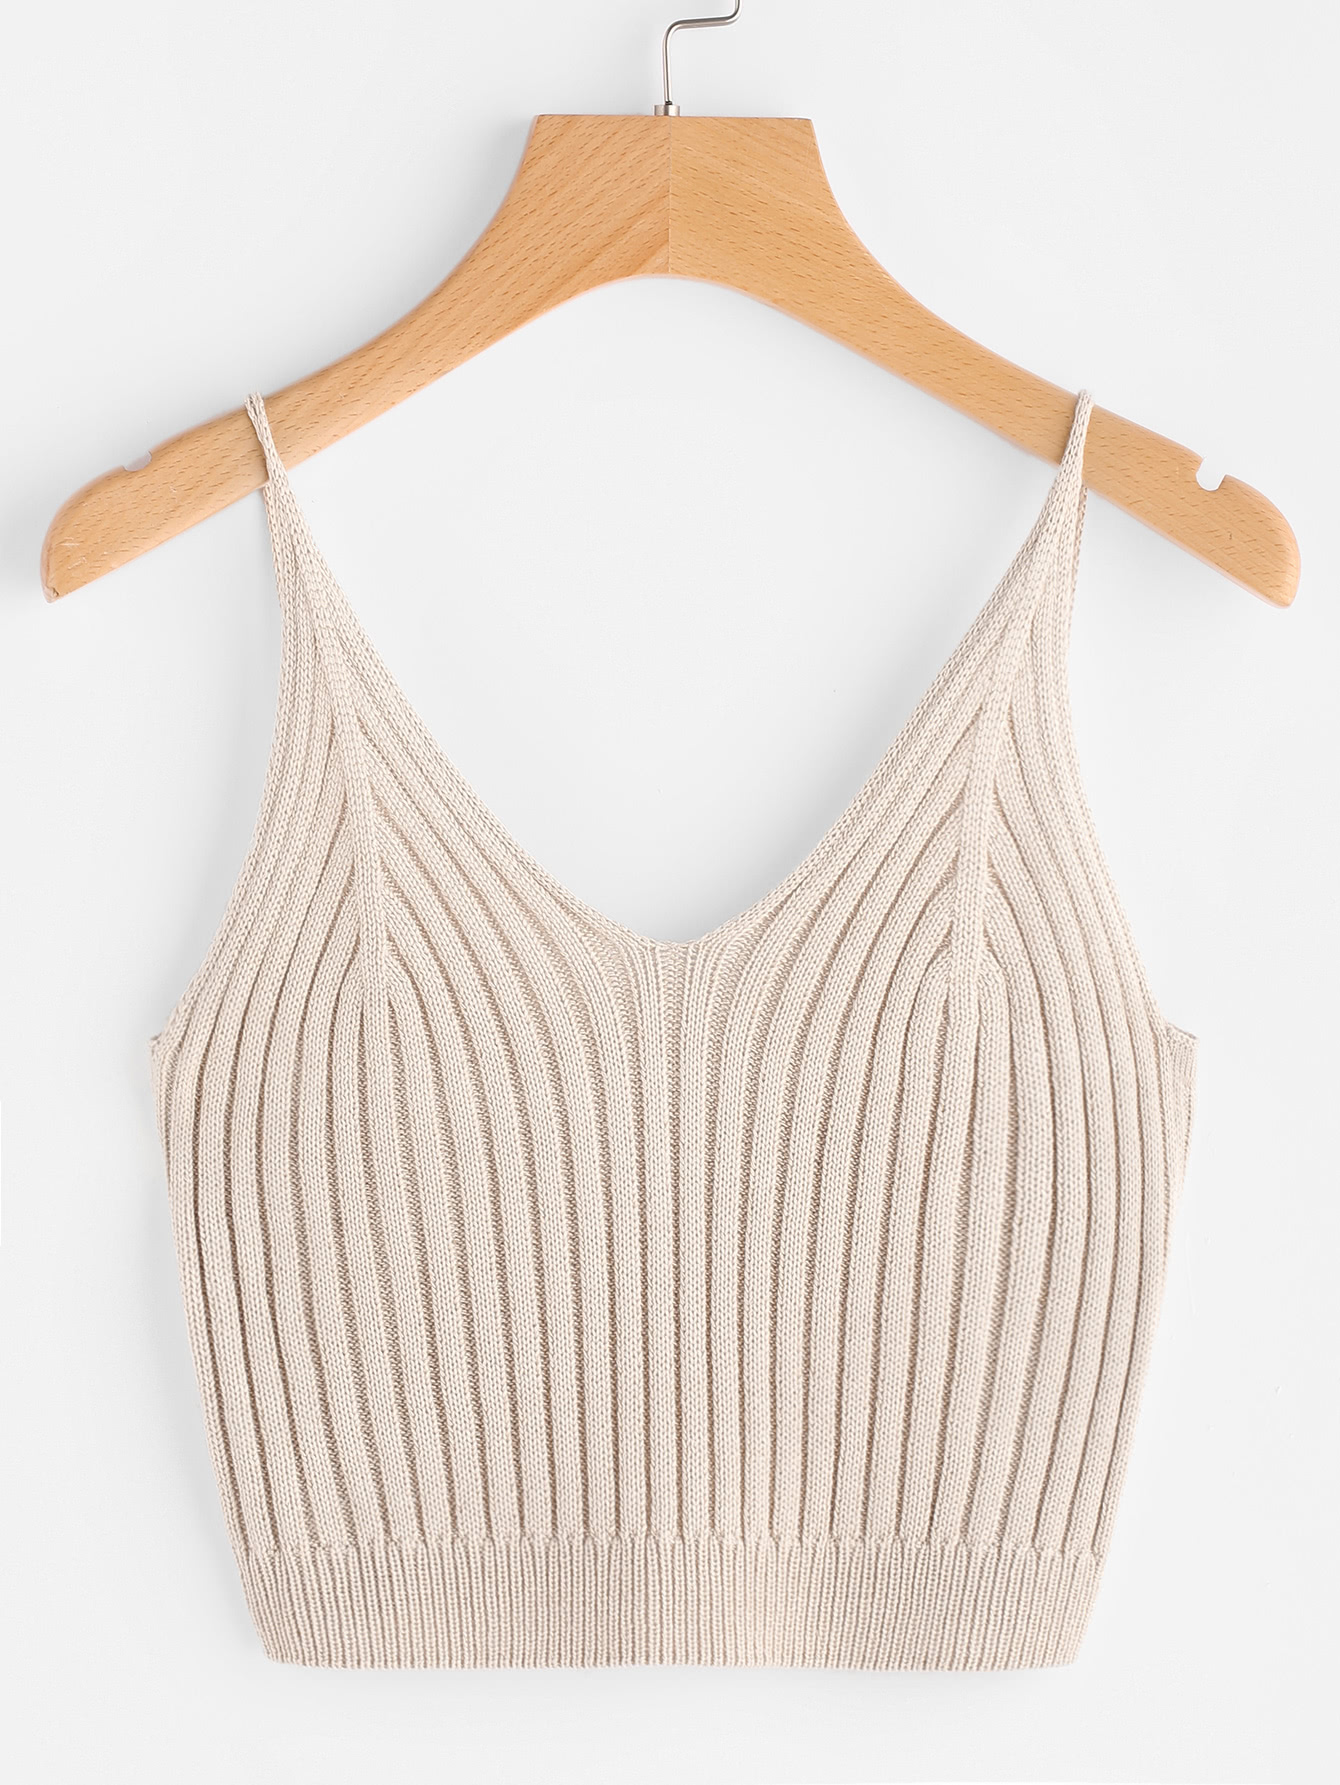 Rib Knit Crop Cami Top vest170425450